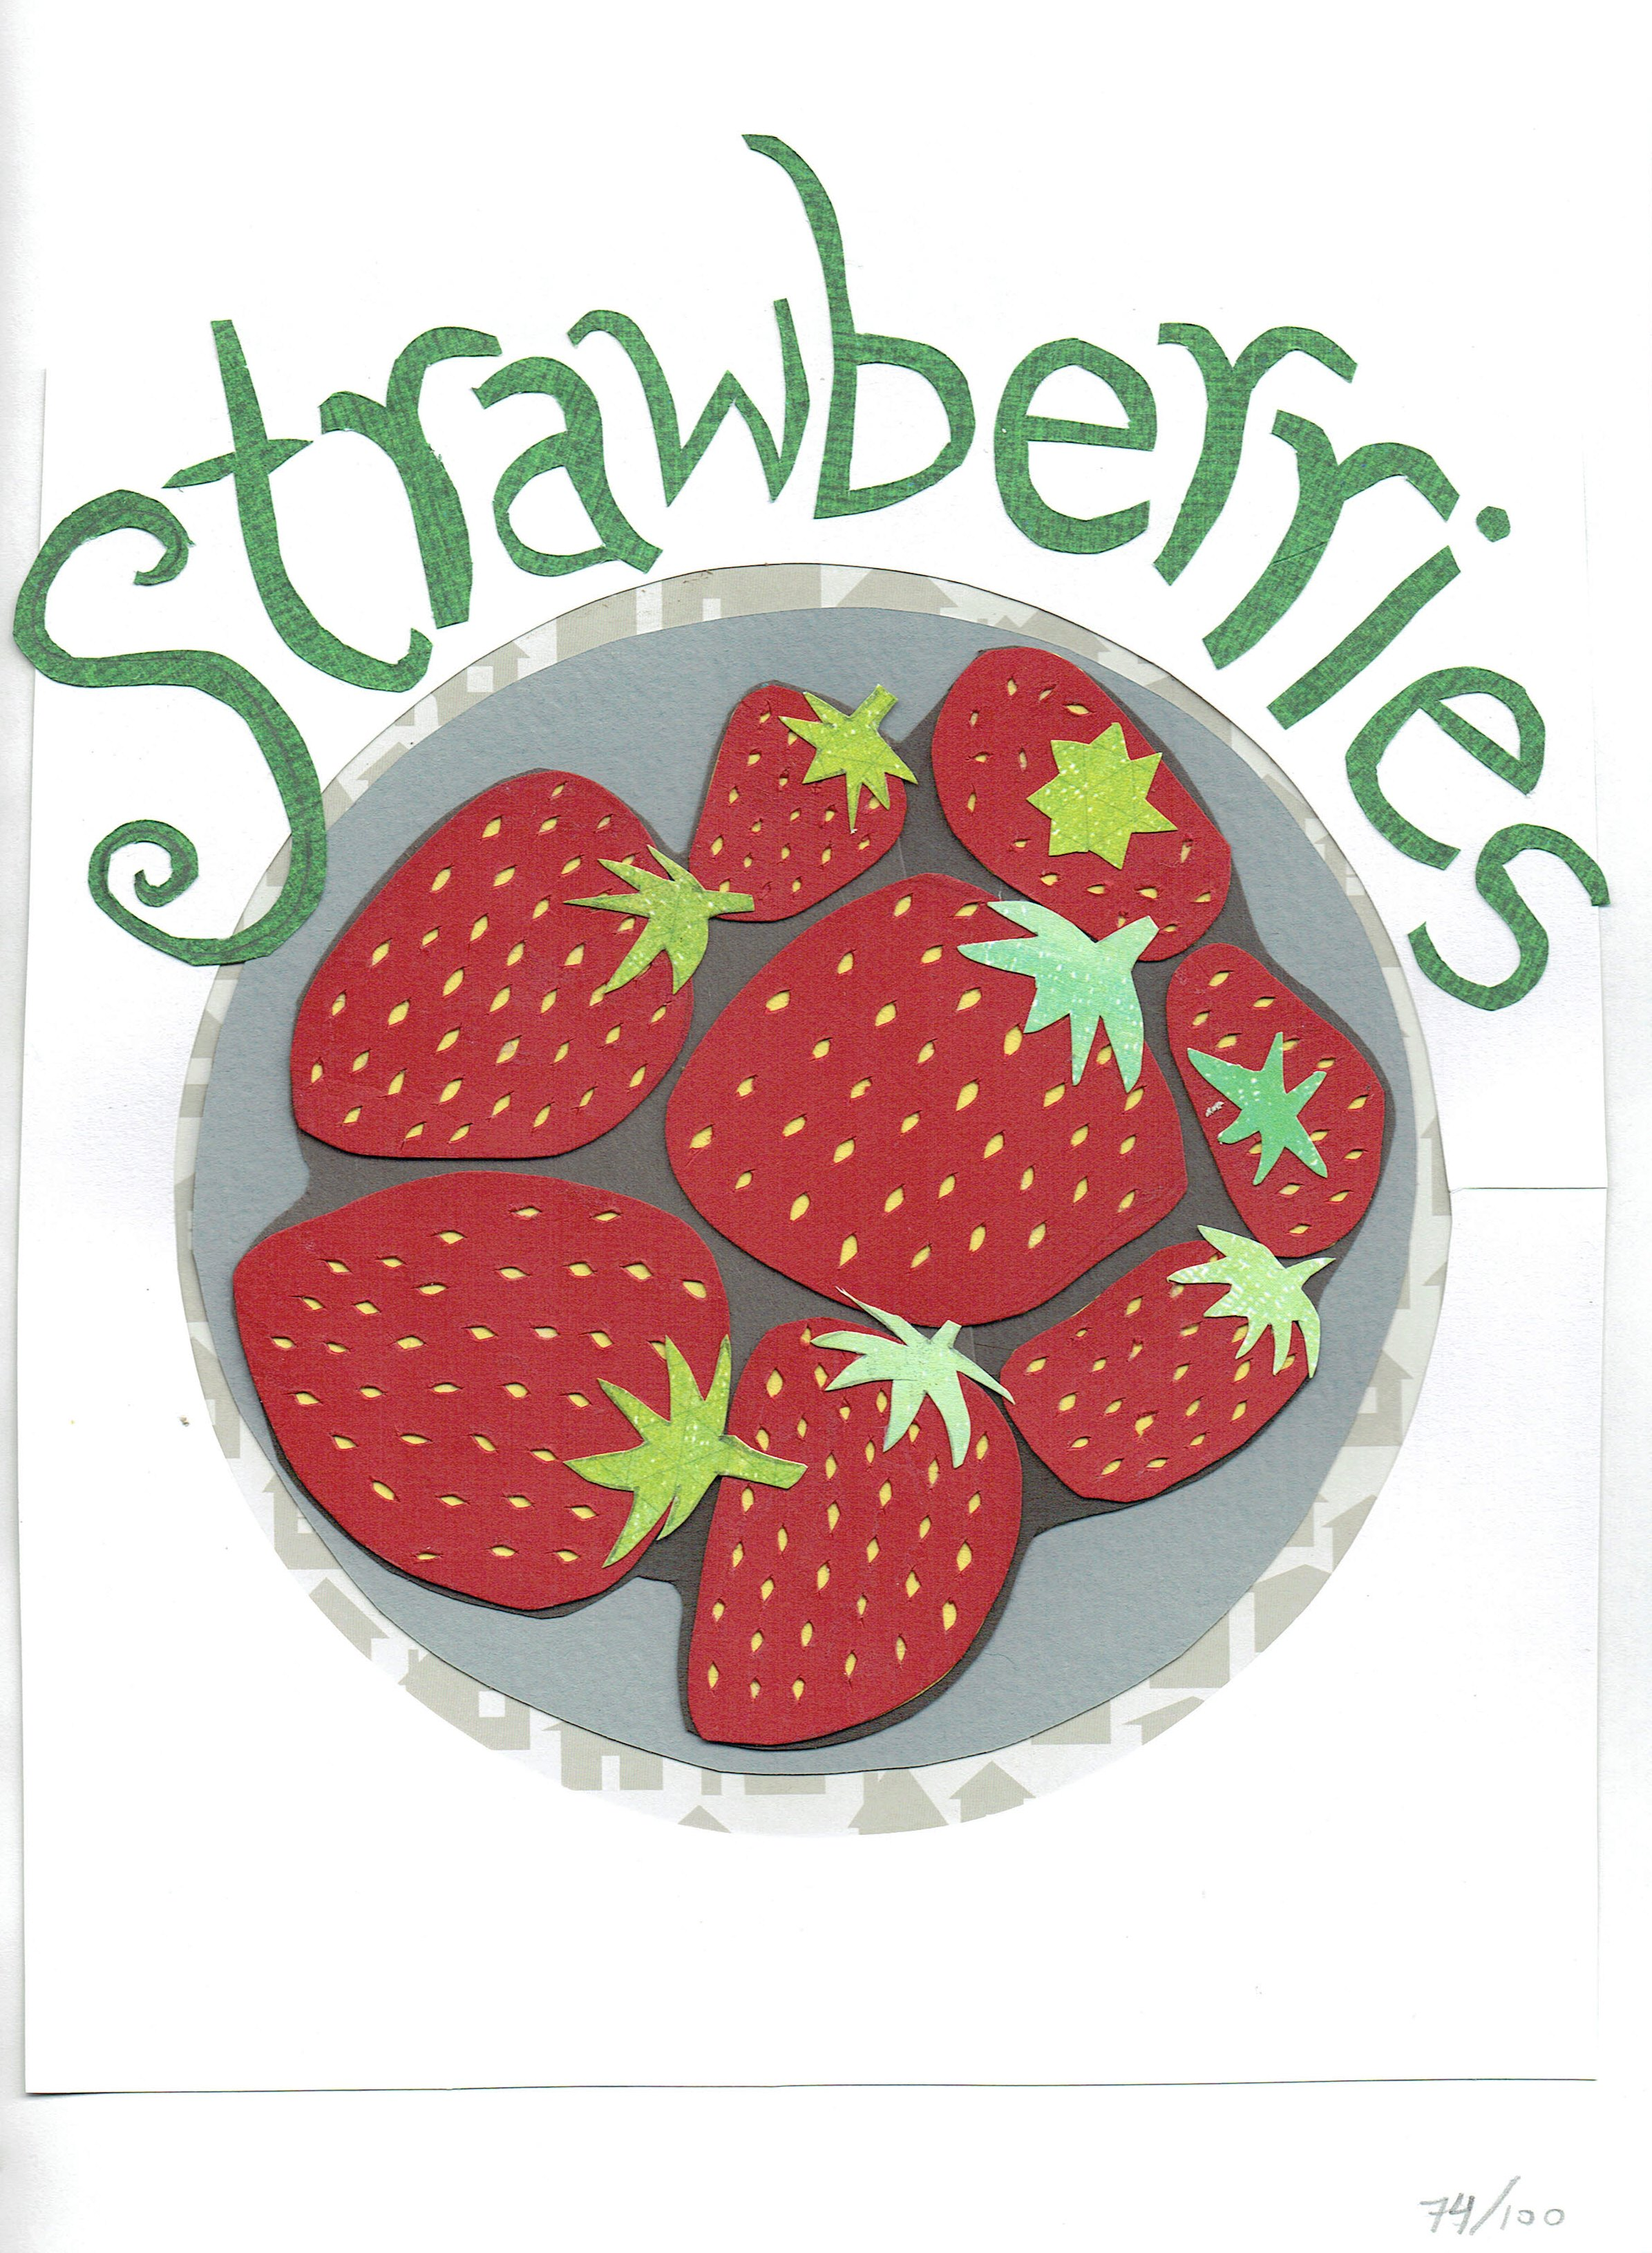 Day 74 - Strawberries